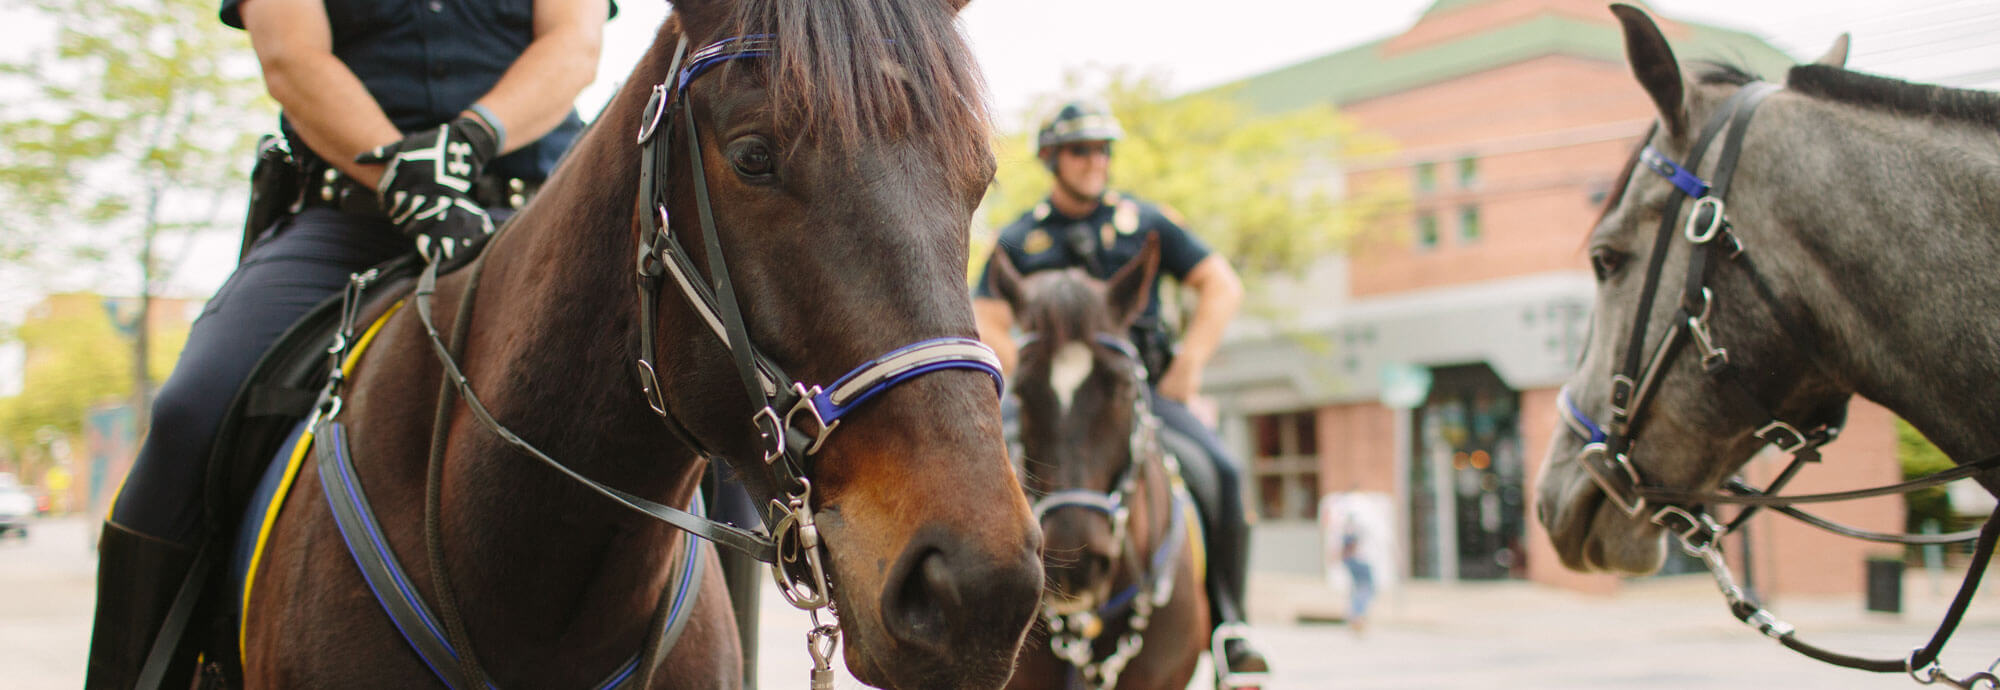 LUPD on horses